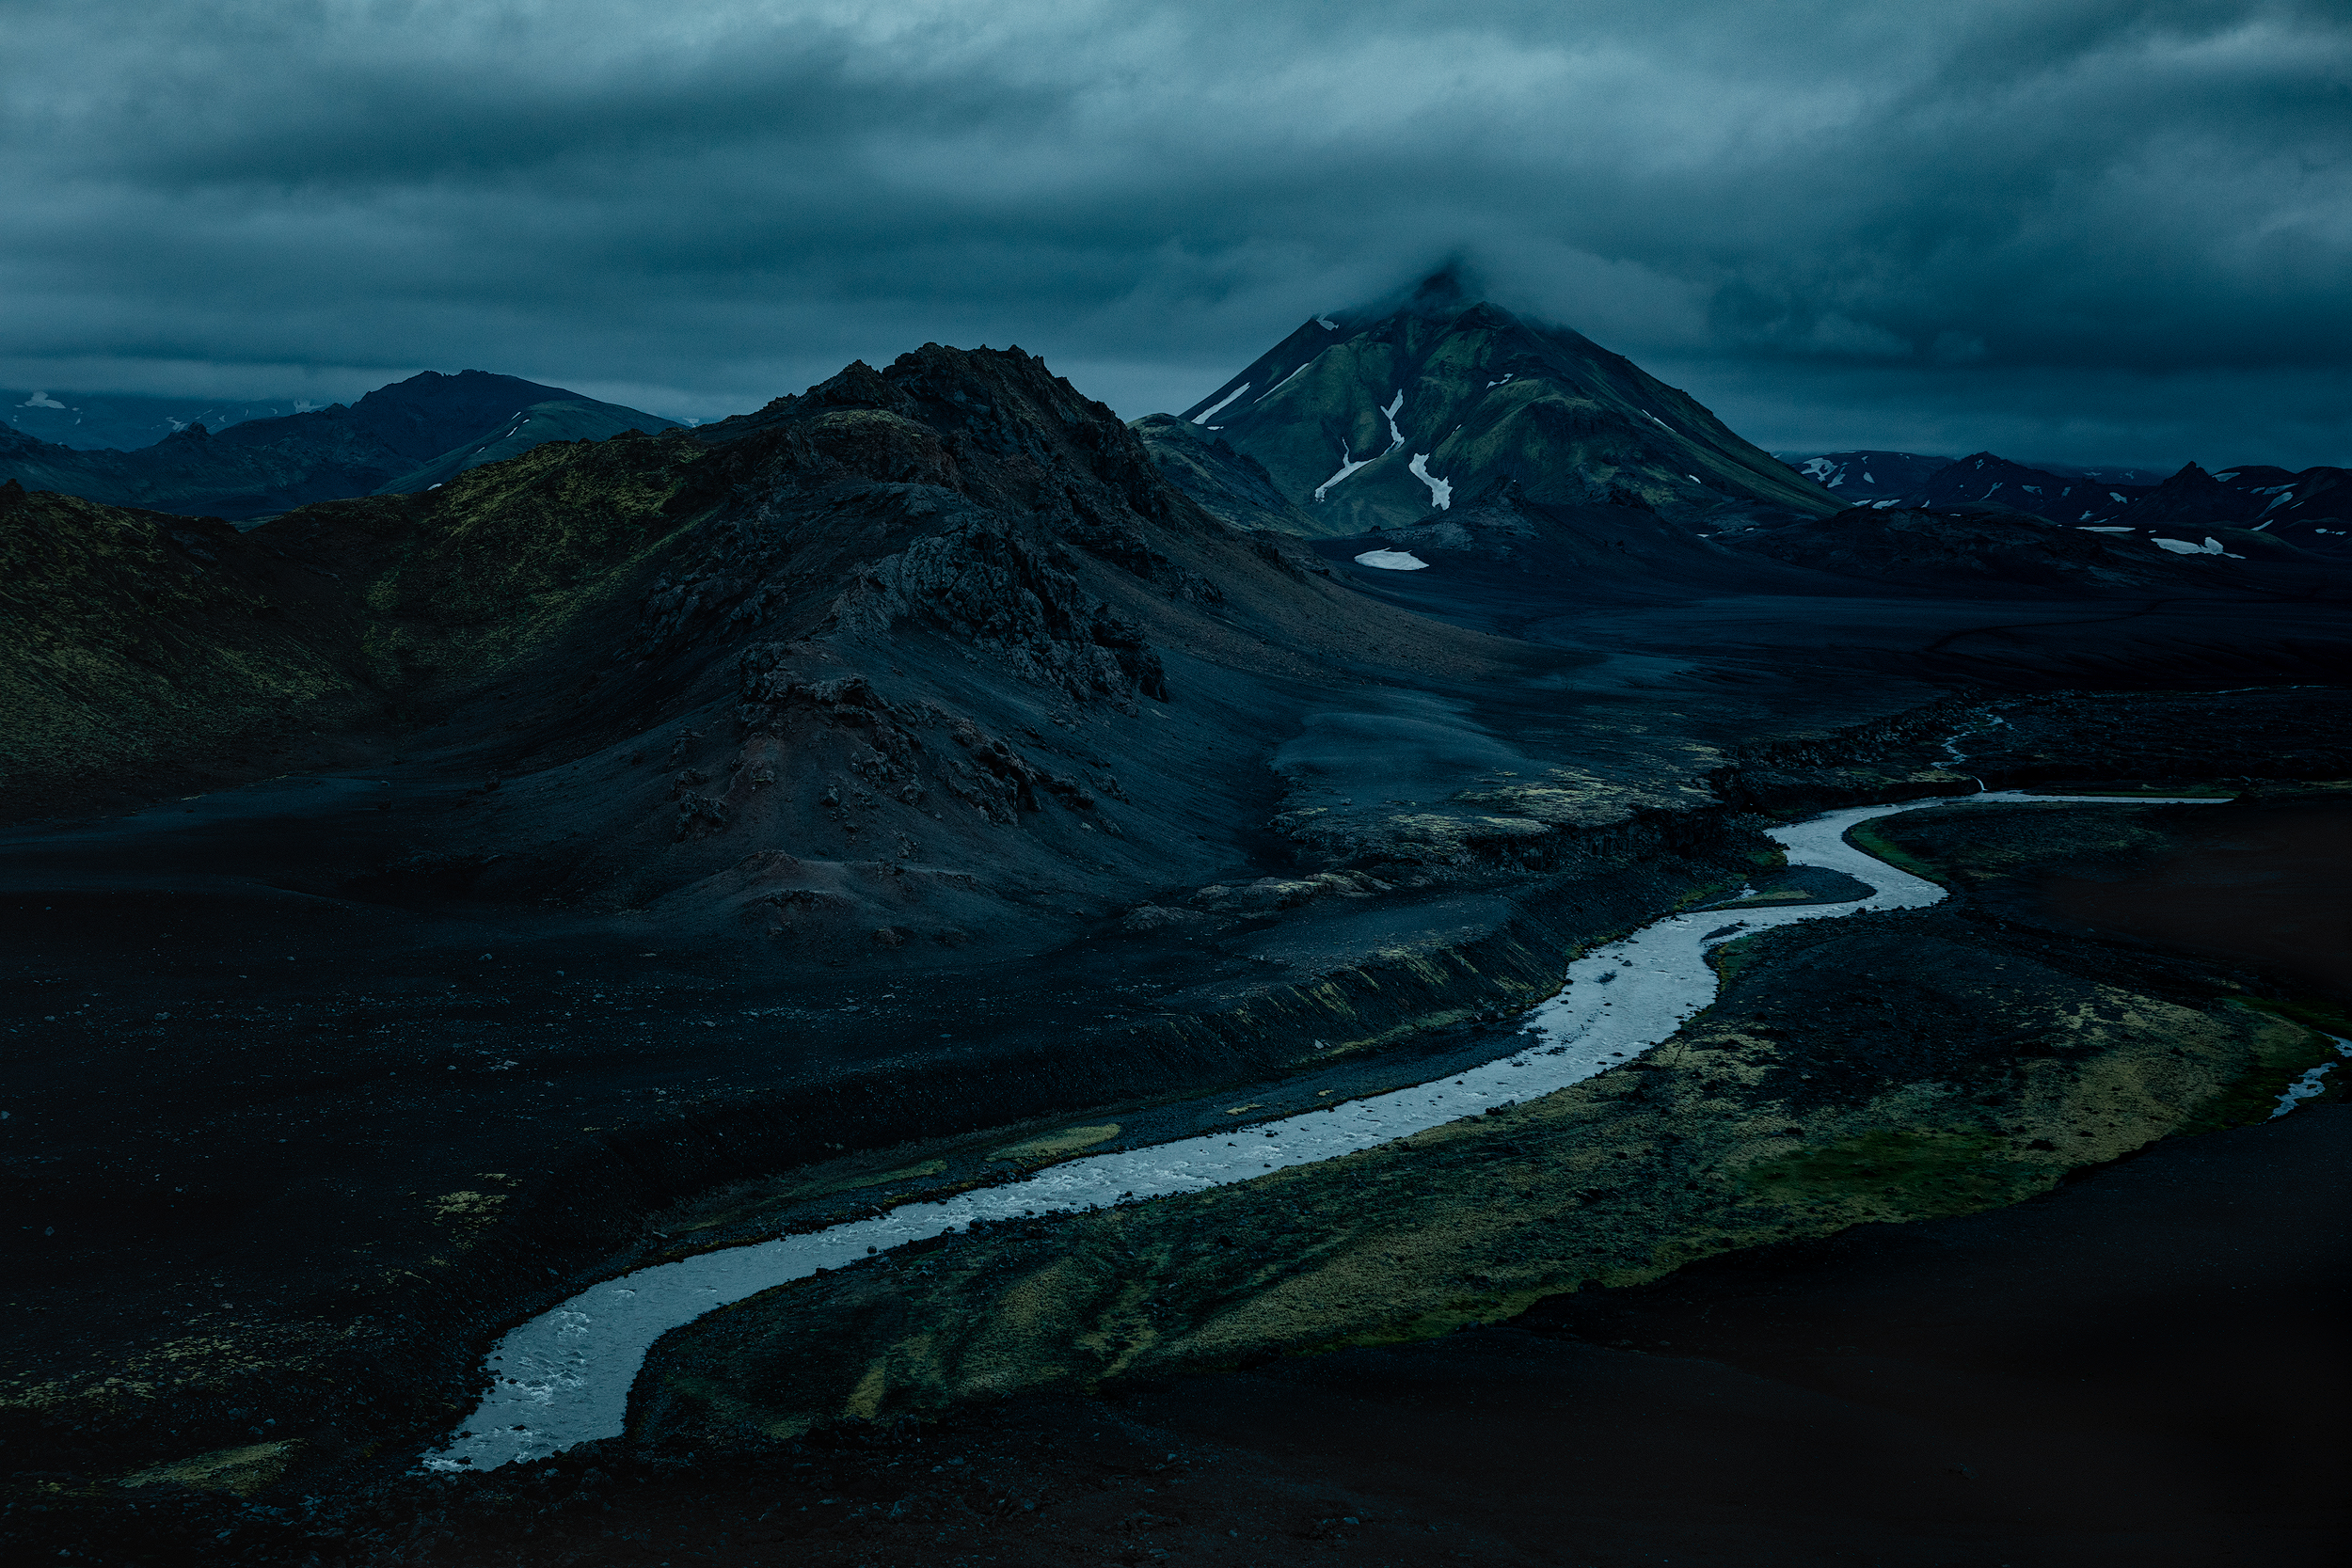 View of Stórasúla mountain in the Suðurland region of Iceland's Highlands